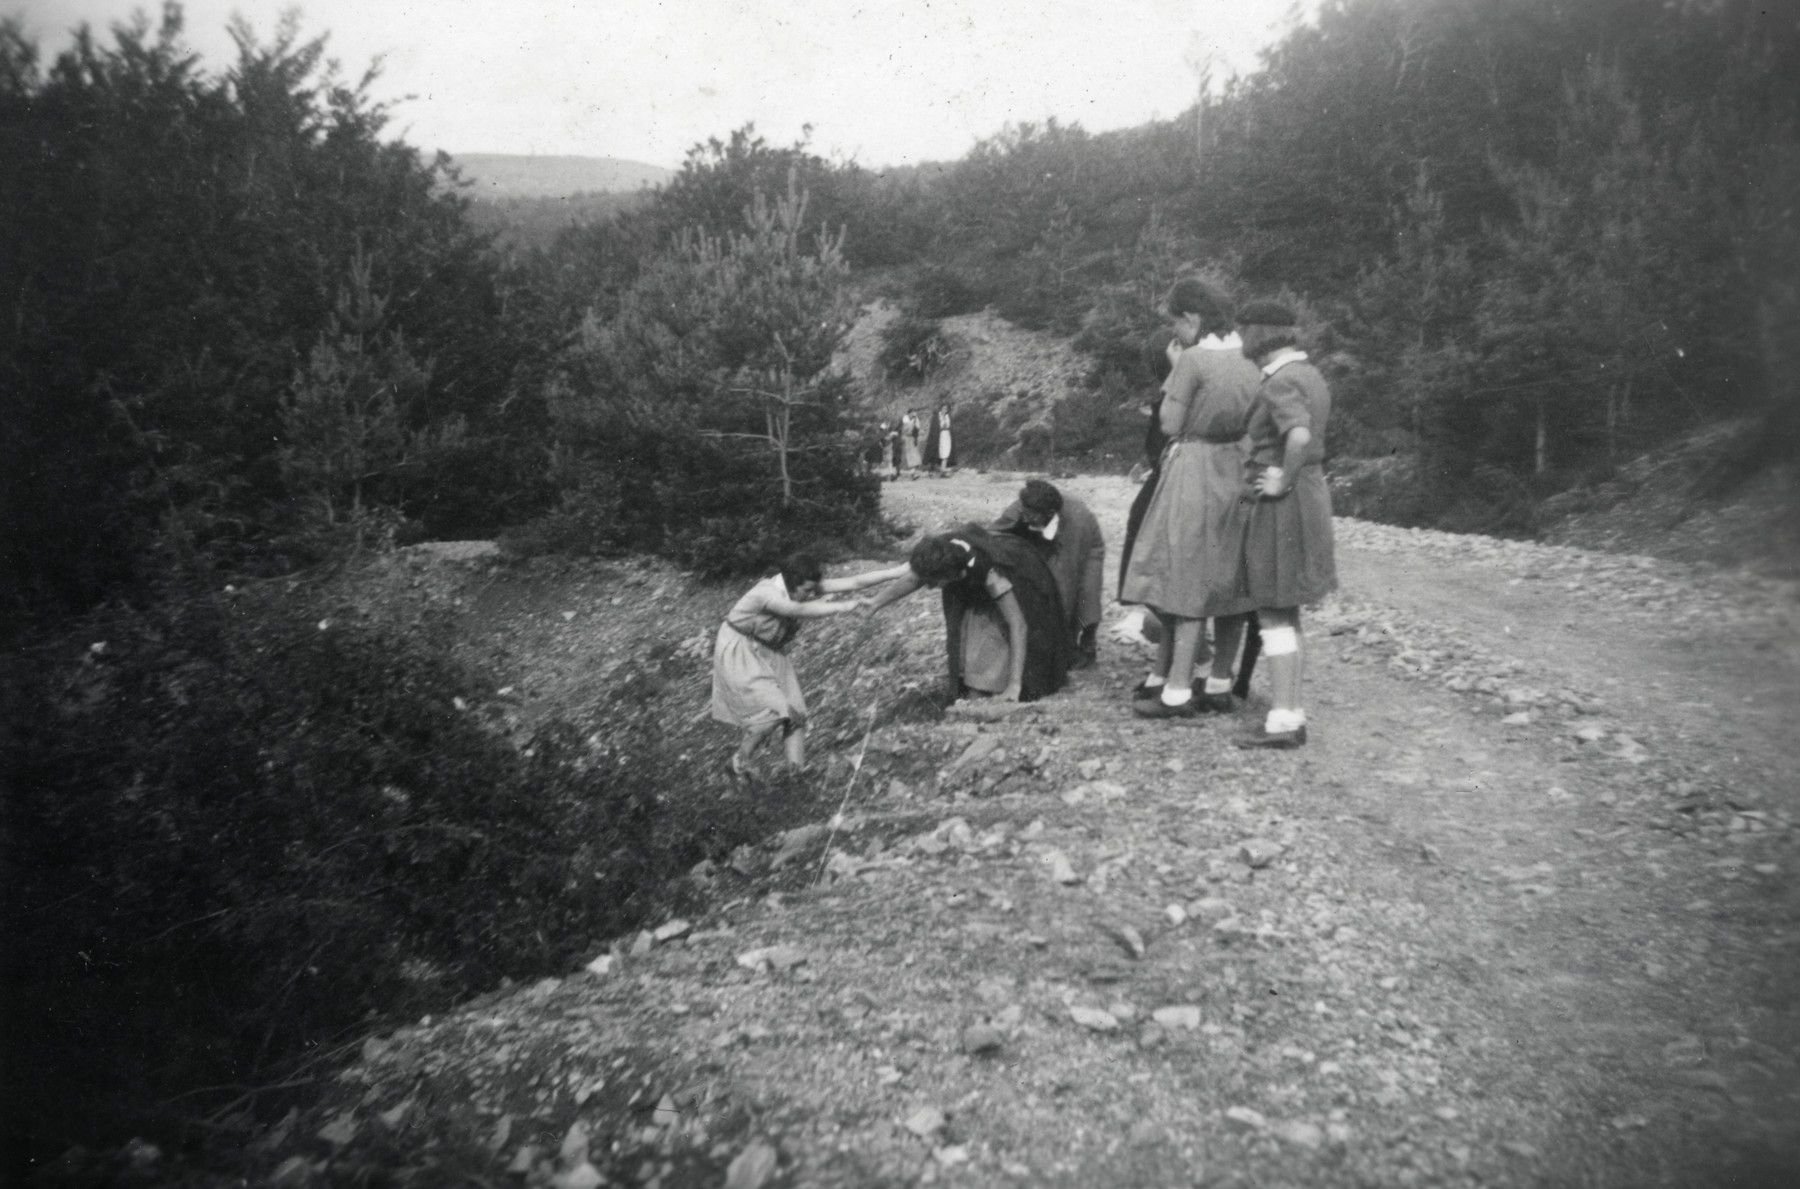 Two girls help a friend climb up the roadside along a dirt road while a few other girls are watching. They attended the Eclaireurs Unionistes summer camp.